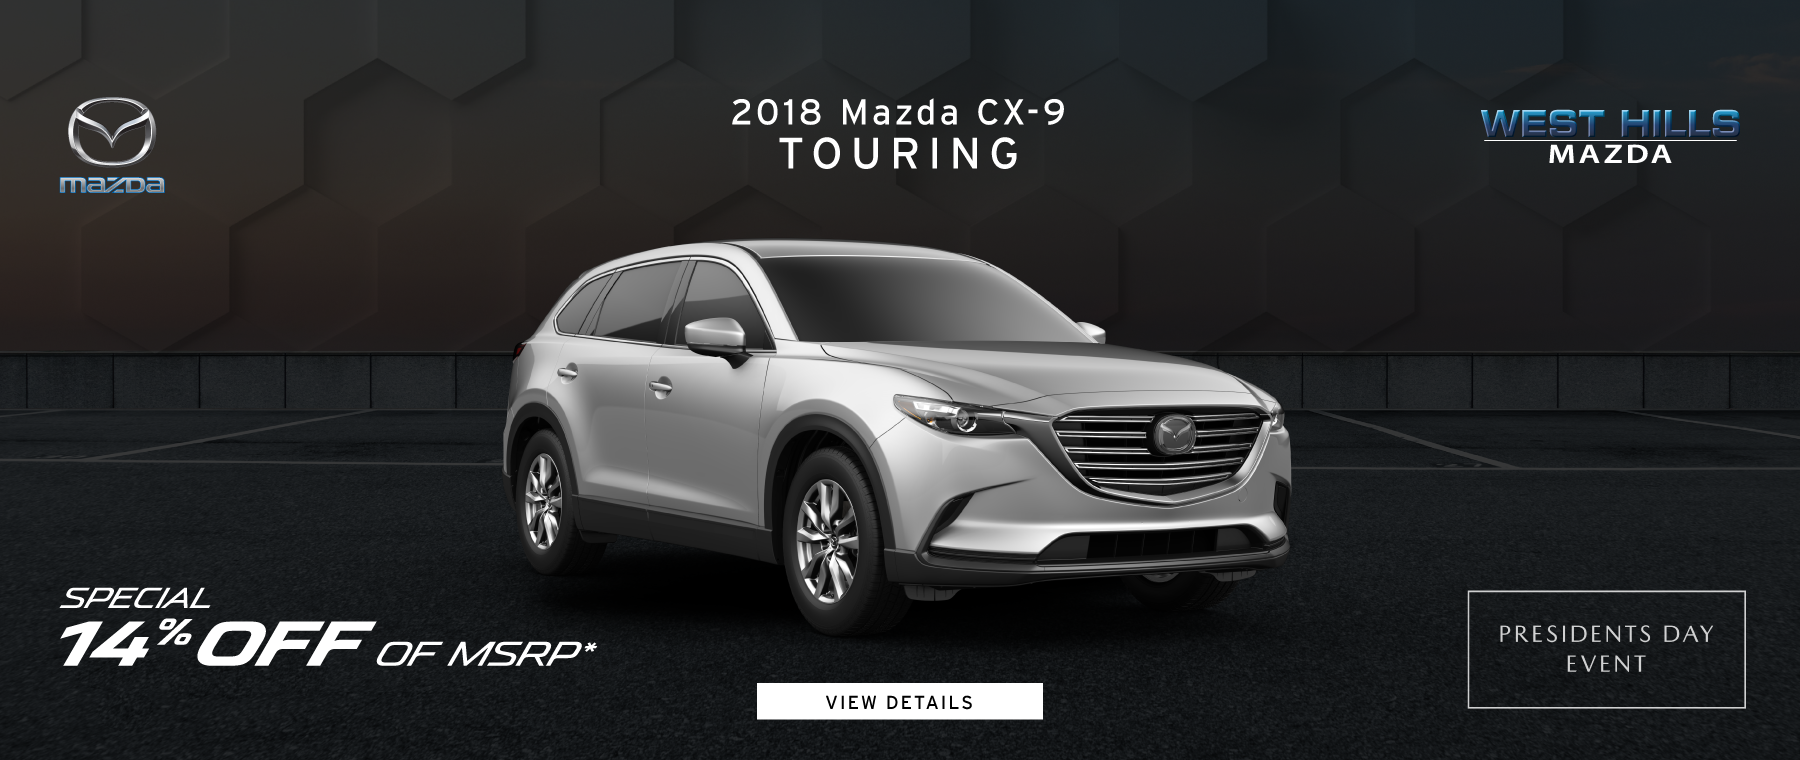 2018 Mazda CX-9 Touring (Featured Vehicle) 14% OFF of MSRP   *Offer valid on 2018 MAZDA CX-9 TOURING. Valid VIN: JM3TCBCY3J0234286. MSRP is $39,625. 14% OFF of MSRP. Subject to credit approval. Down payment and monthly payment may vary. Not all will qualify for rebate. Excludes state and local taxes, tags, registration and title, insurance and dealer charges. A negotiable dealer documentary service fee of up to $150 may be added to the sale price or capitalized cost. Limit one discount per vehicle per customer. See dealer for complete details. Offer Expires: 2/28/2019.